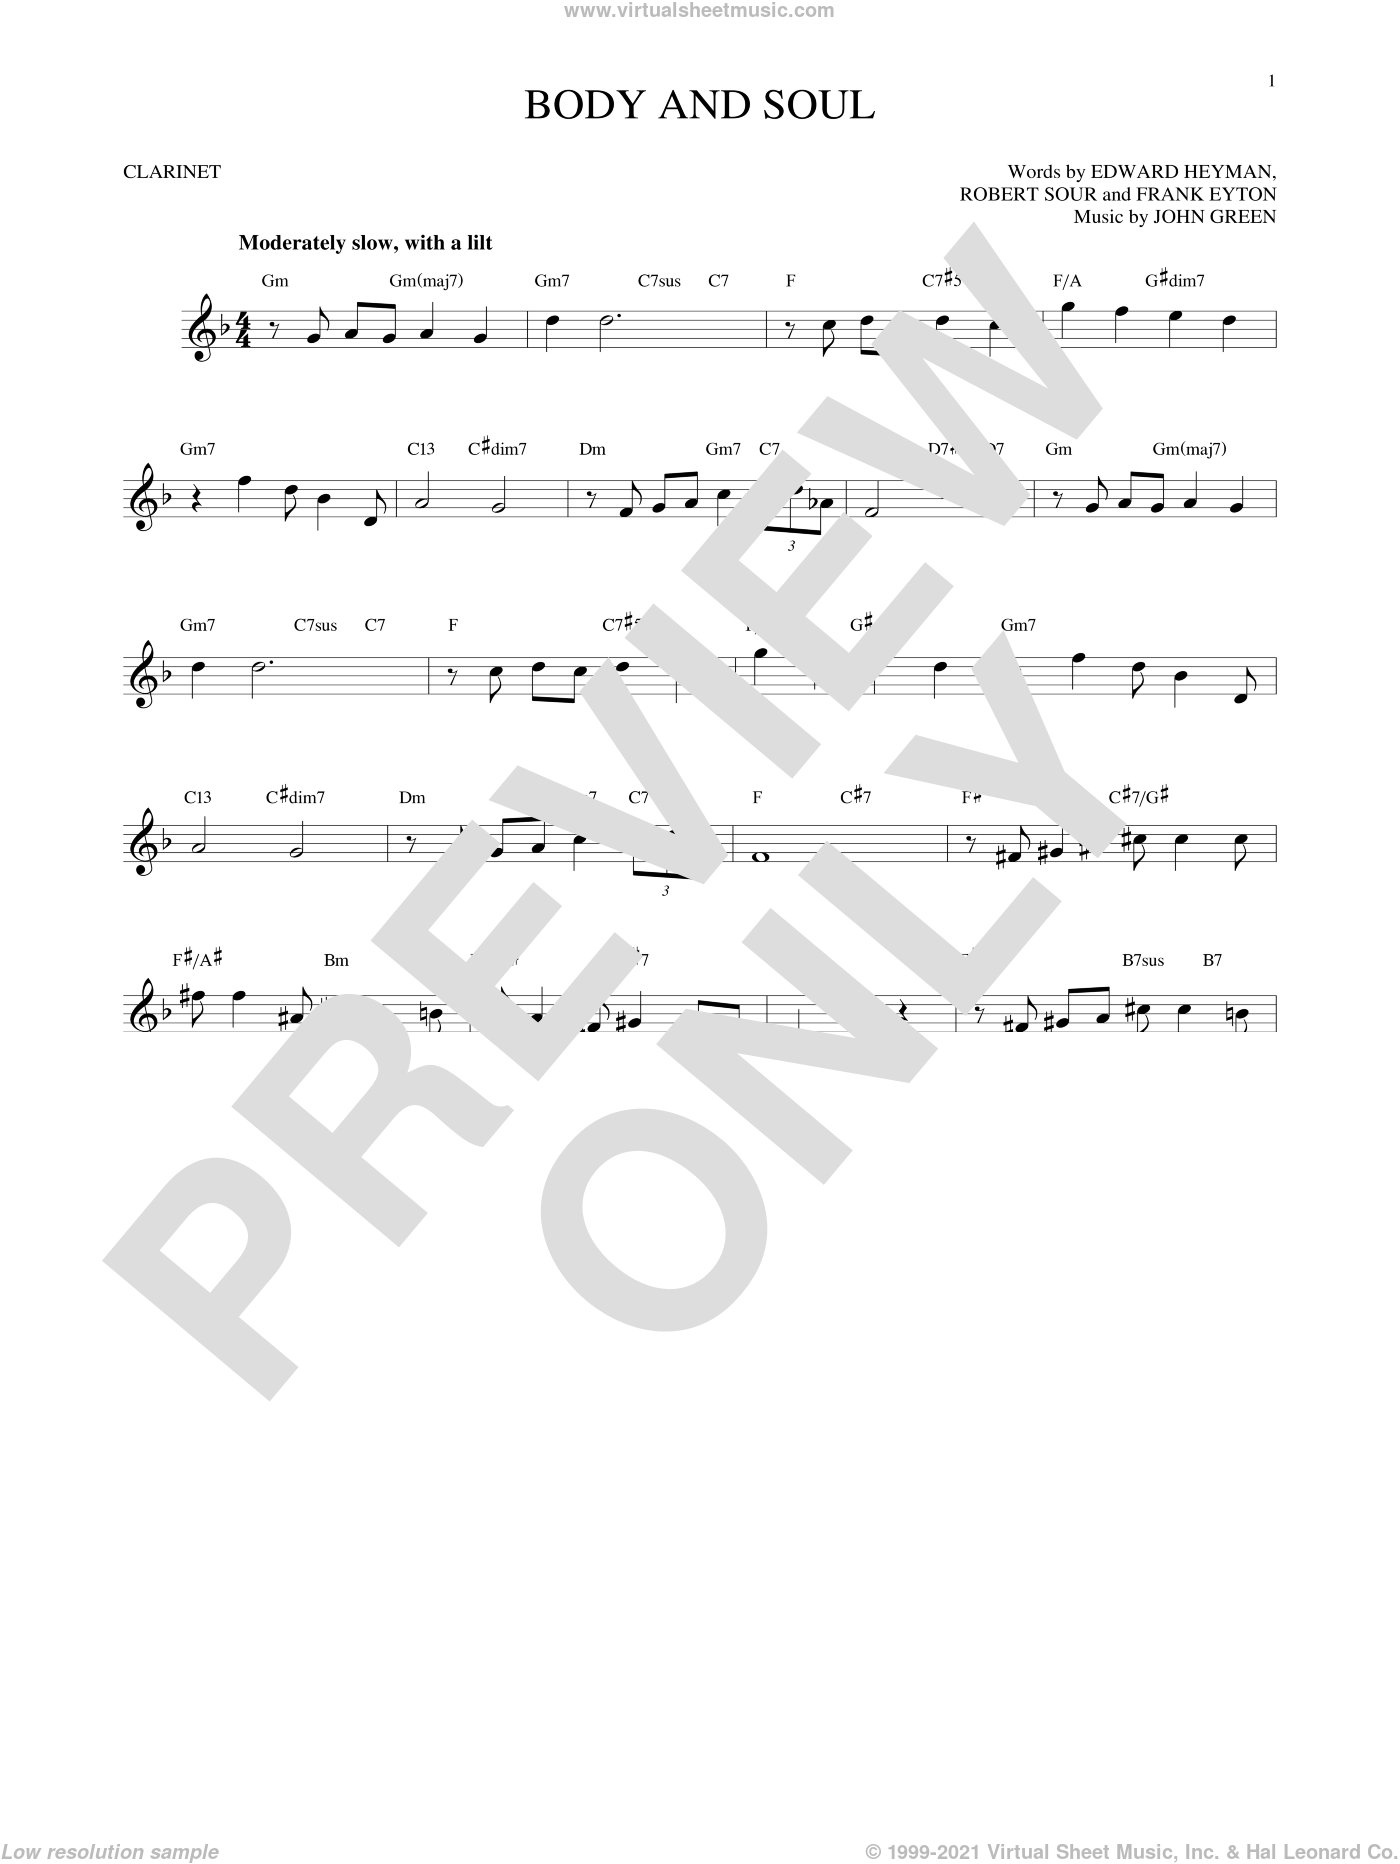 Body And Soul sheet music for clarinet solo by Edward Heyman, Tony Bennett & Amy Winehouse, Frank Eyton, Johnny Green and Robert Sour, intermediate skill level